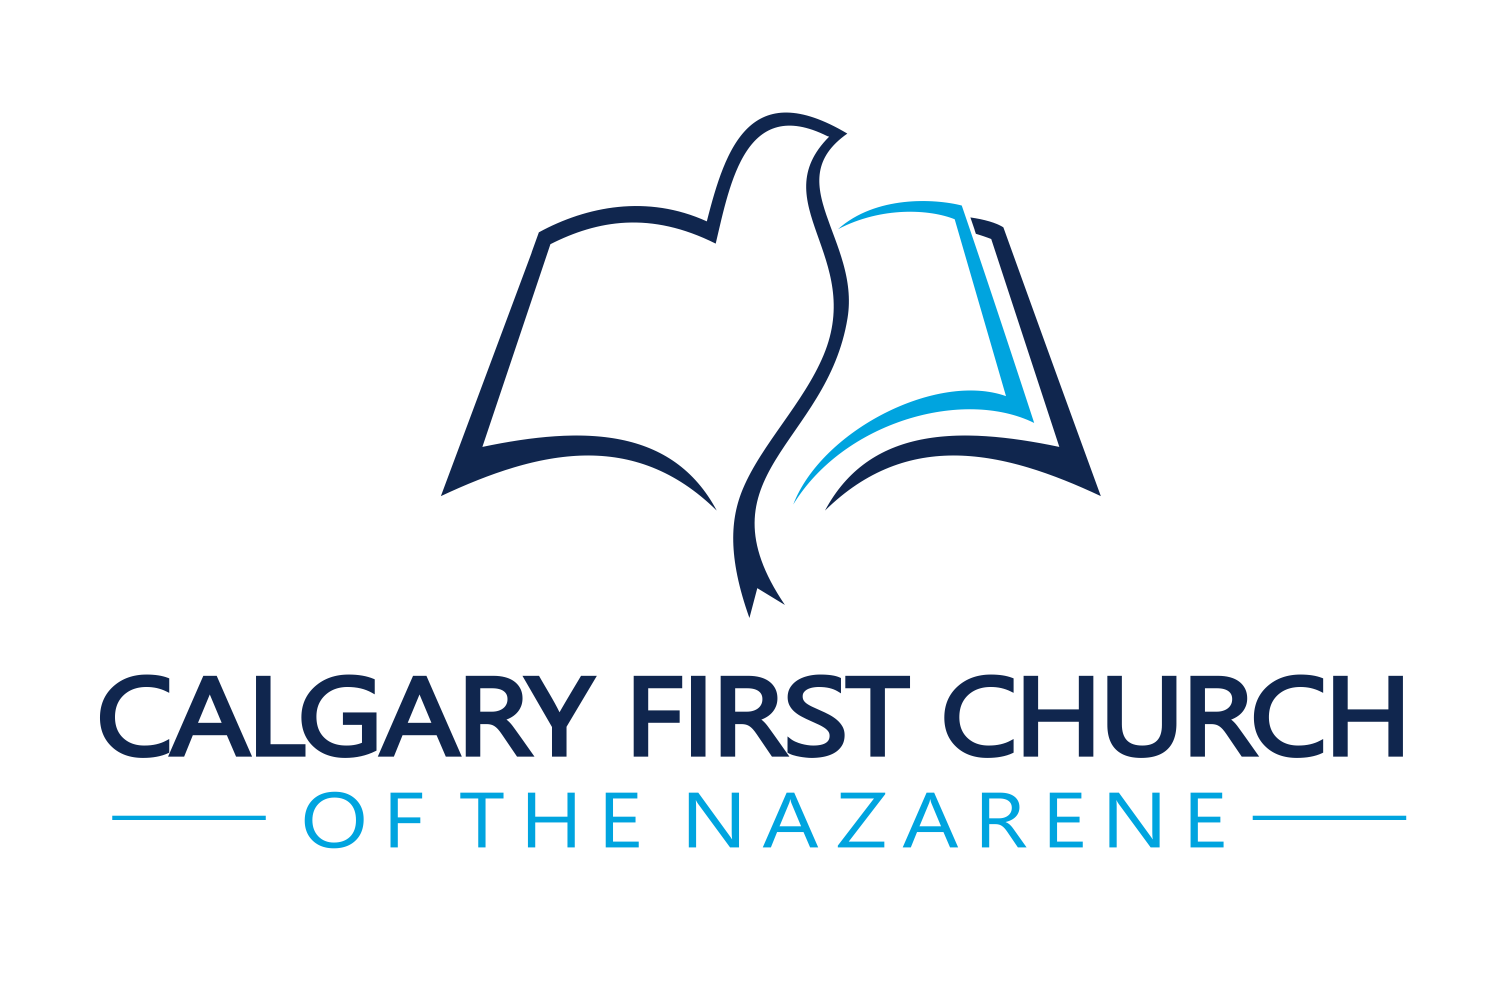 Calgary First Church of the Nazarene